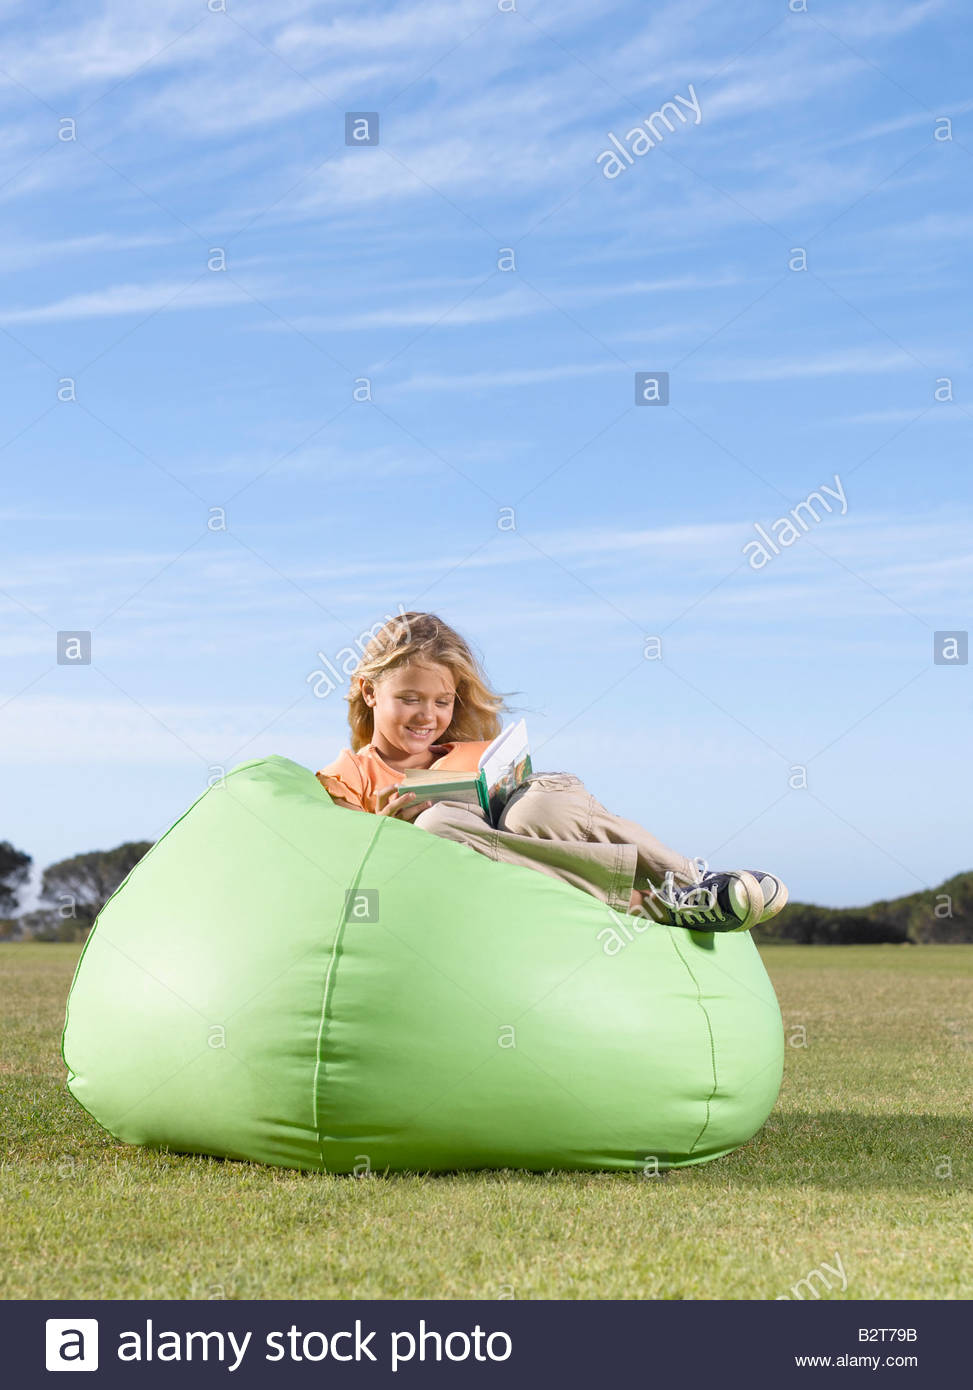 Young girl in bean bag reading outdoors - Stock Image